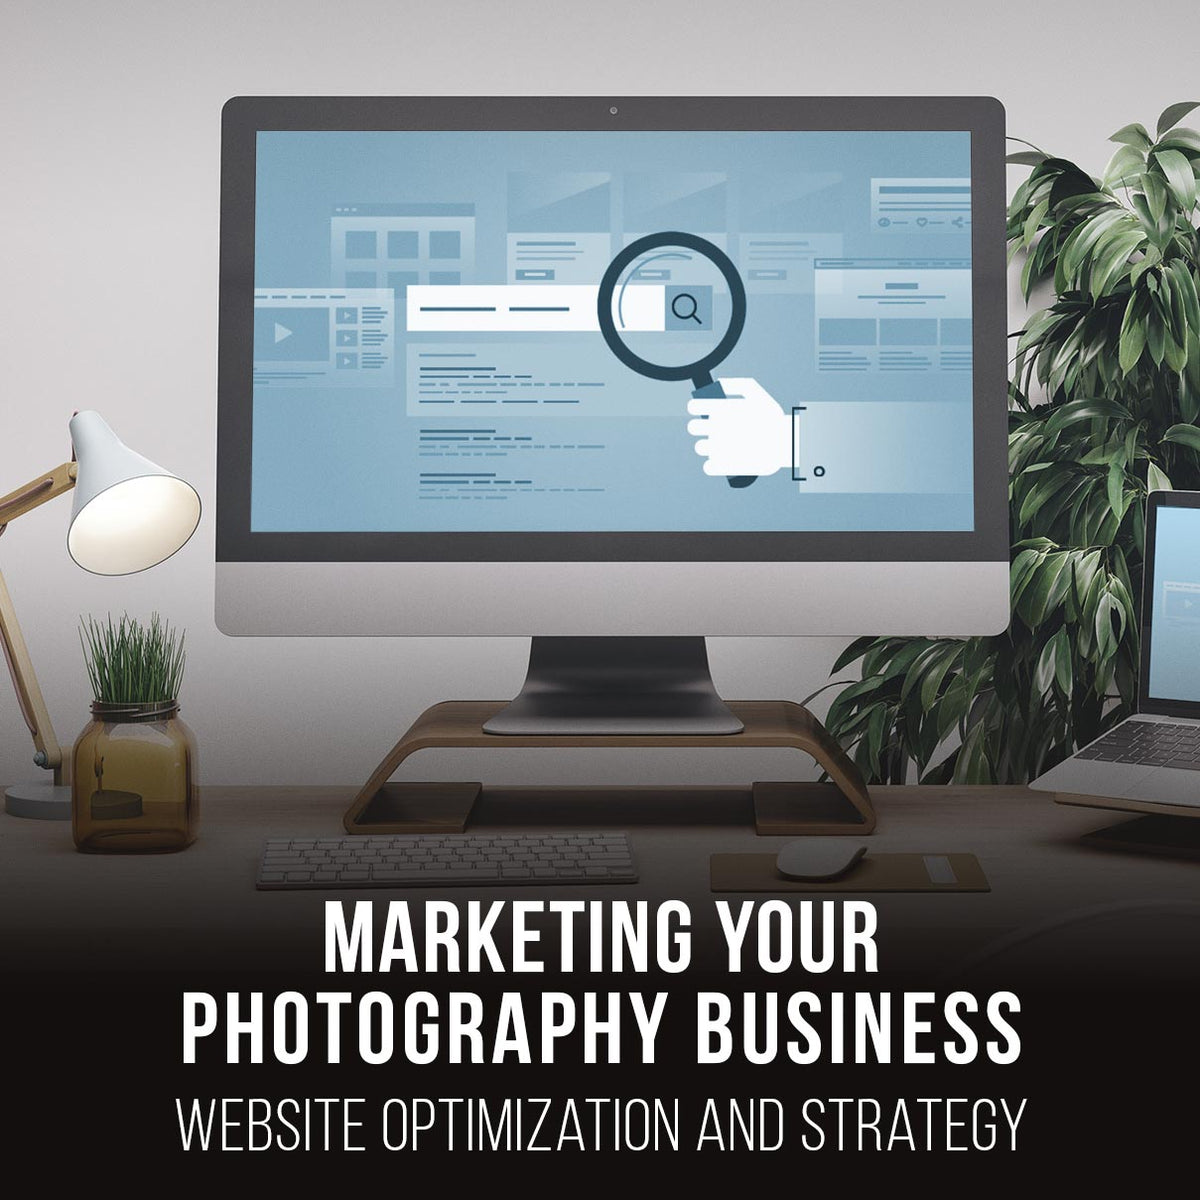 Marketing Your Photography Business Part 1 | Optimization & Strategy